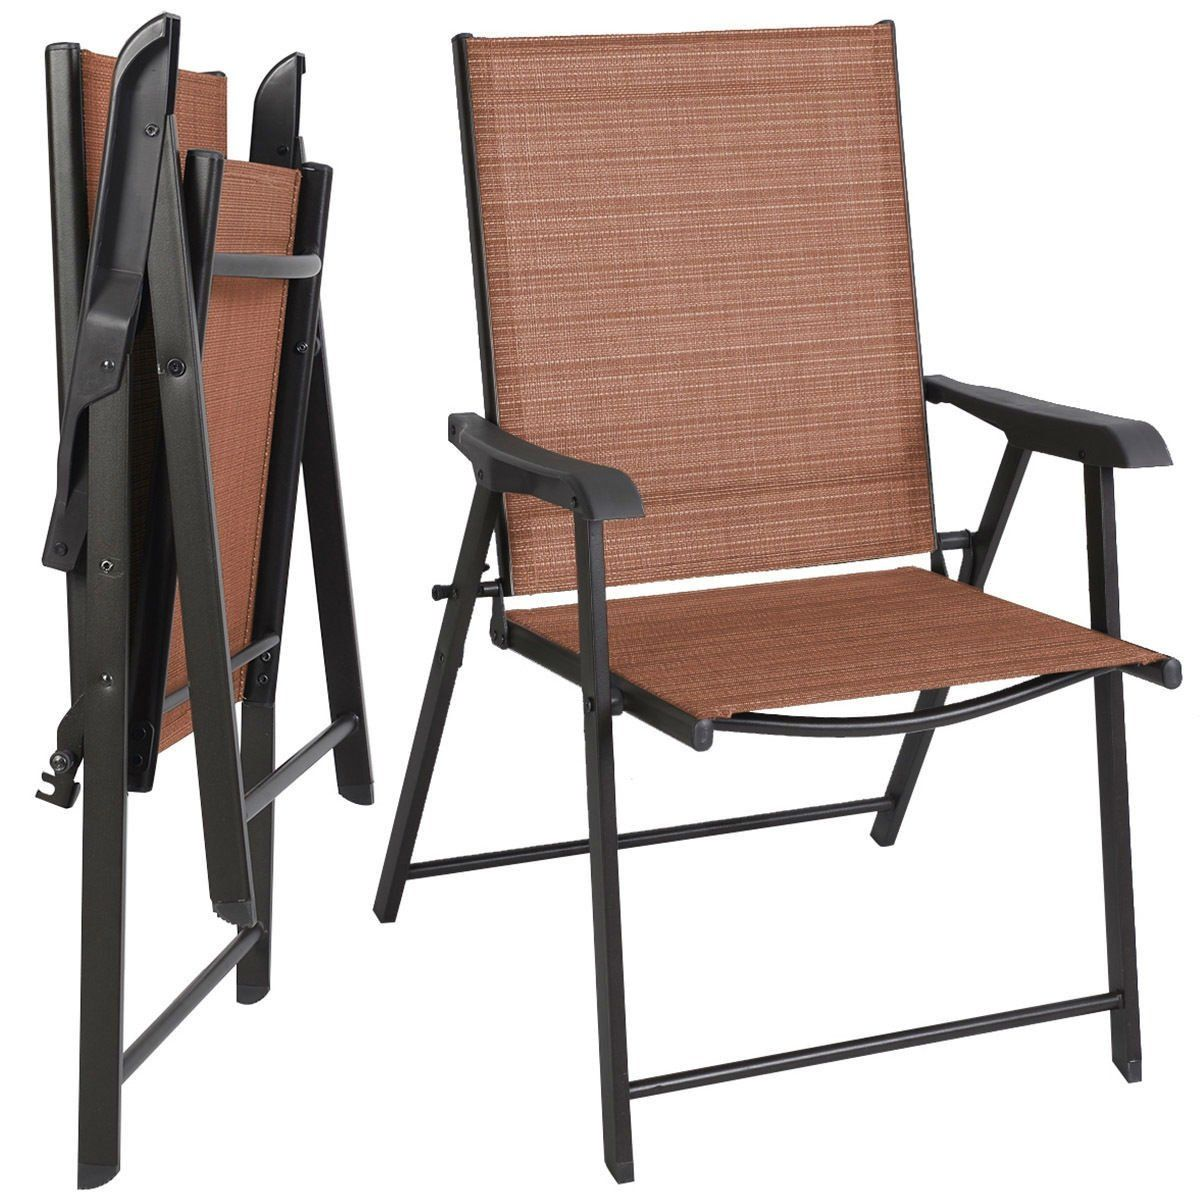 Set Of 2 Outdoor Folding Patio Chairs, Red And Black Folding Patio Chairs